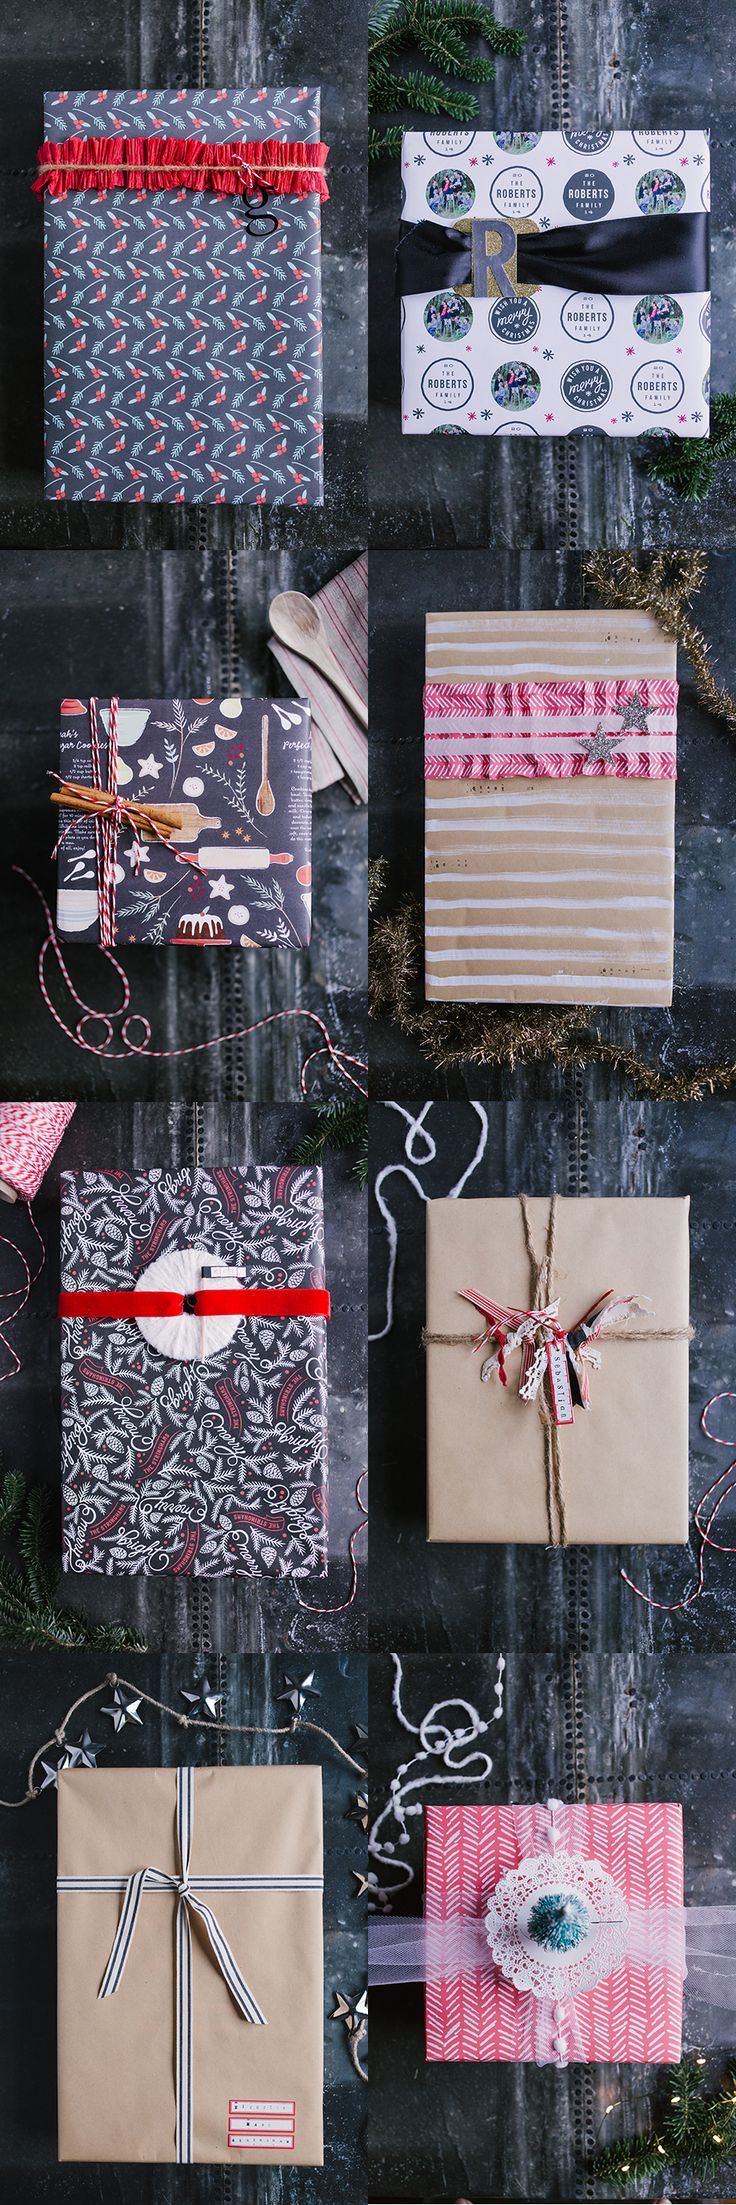 Handmade Mood | Wrapping Ideas | http://handmademood.com